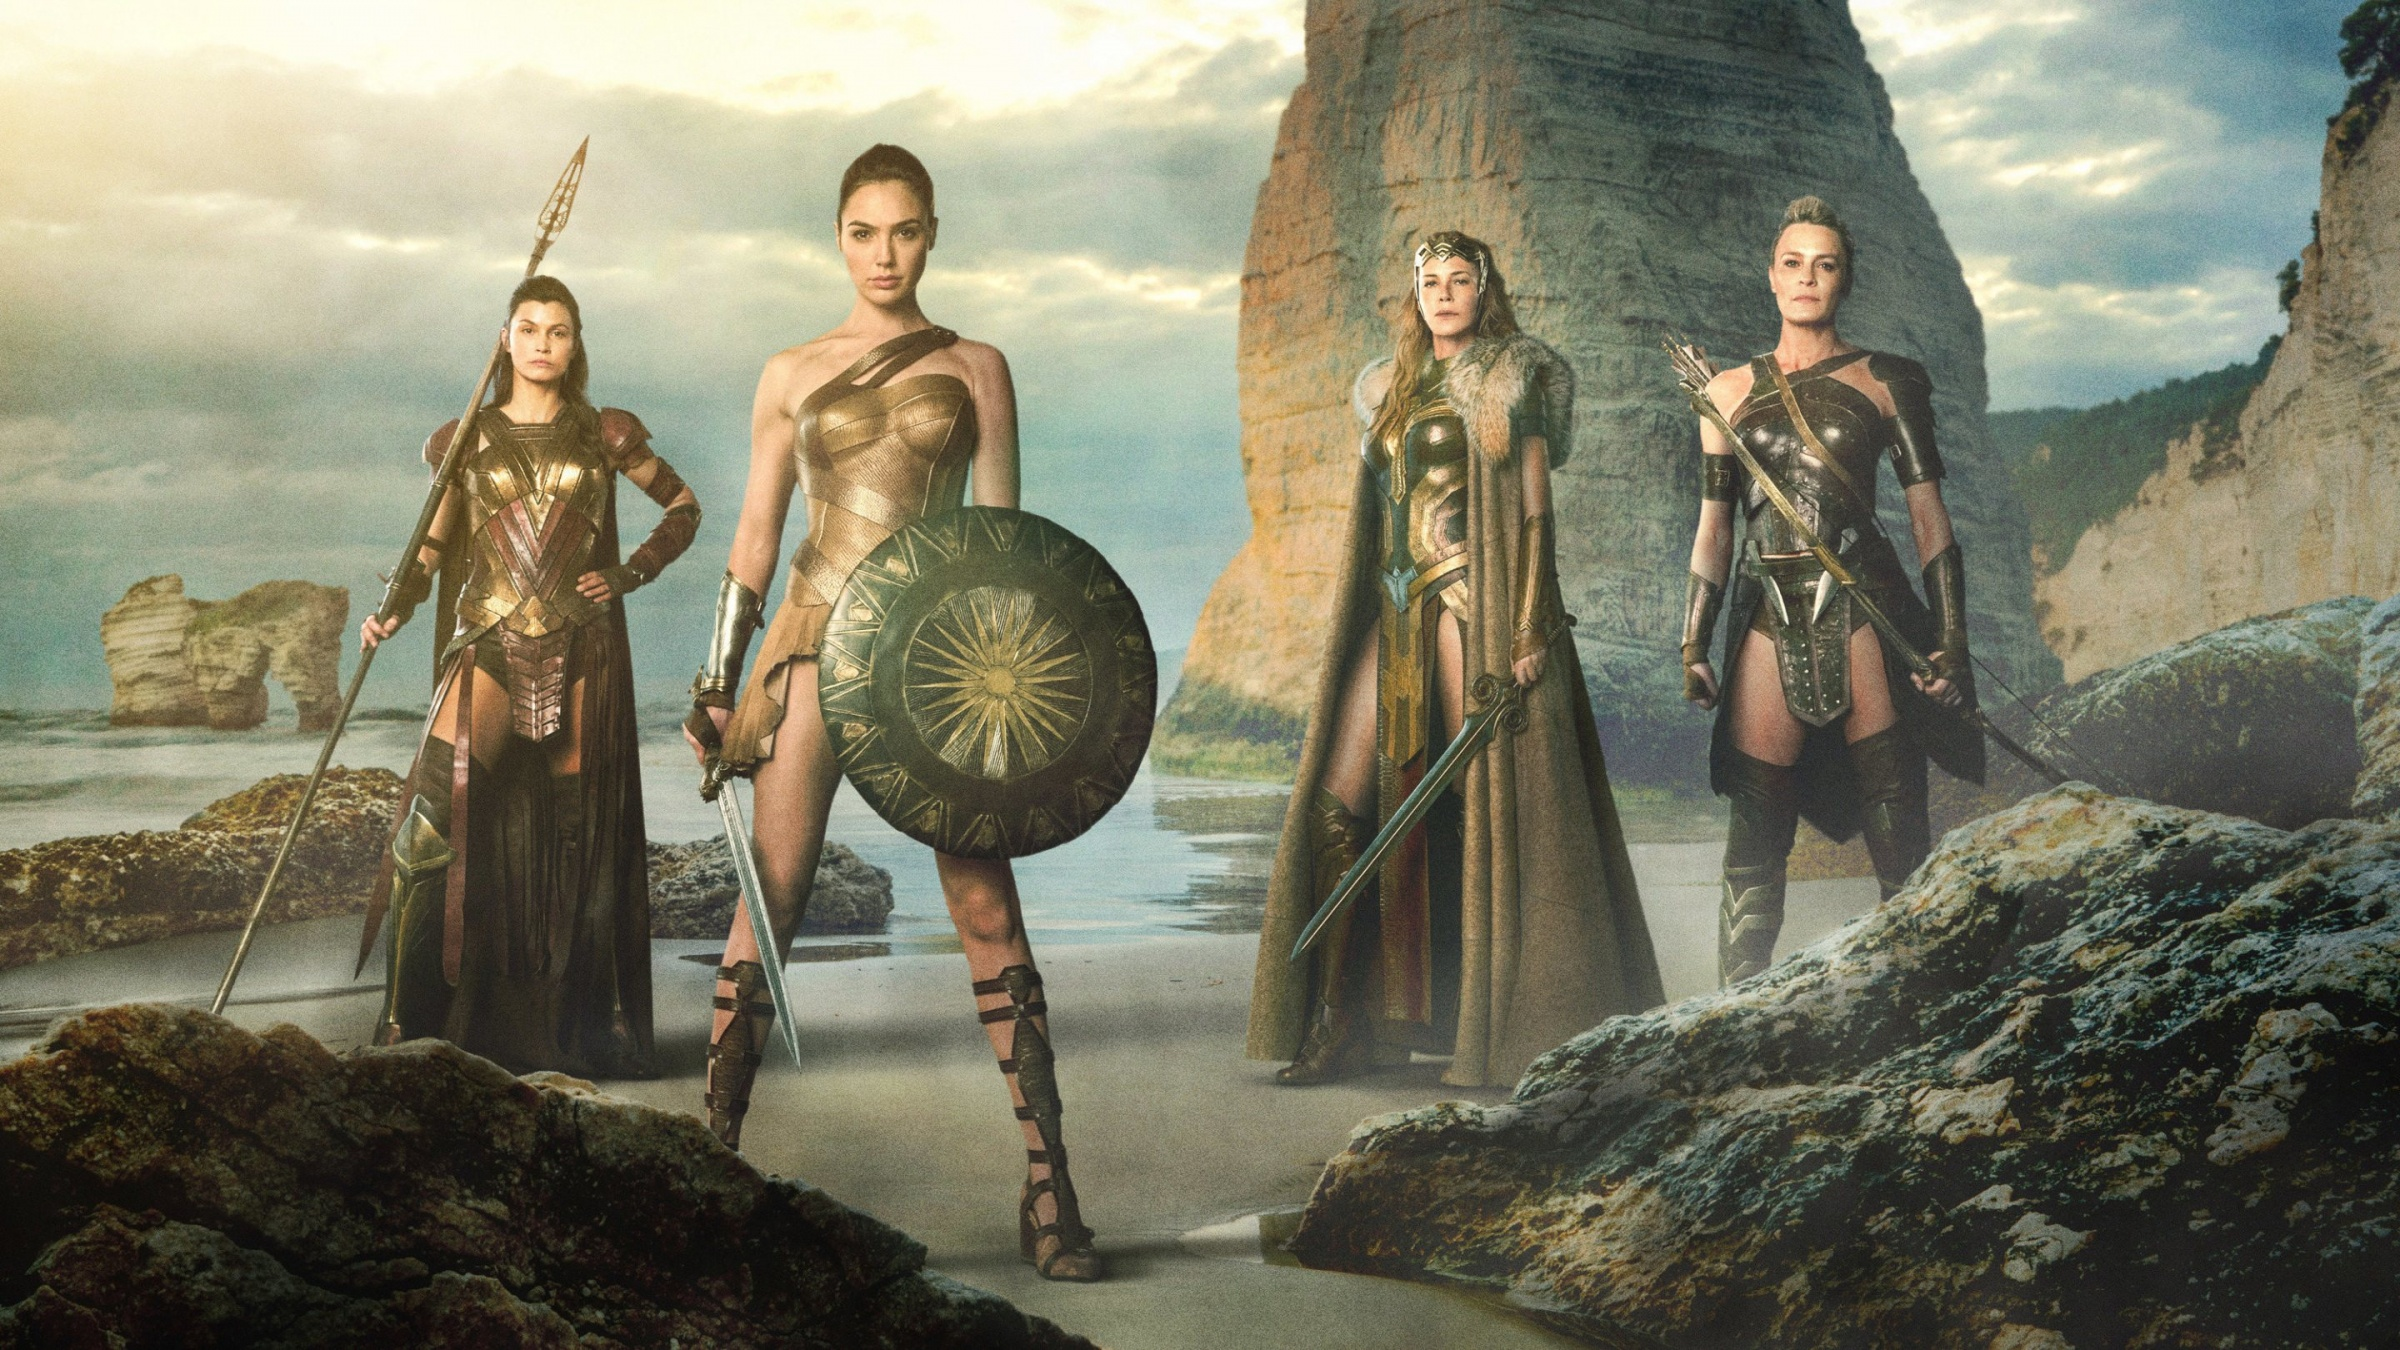 Wonder Woman 2017 Movie Stills Wallpapers - 2400x1350 ...